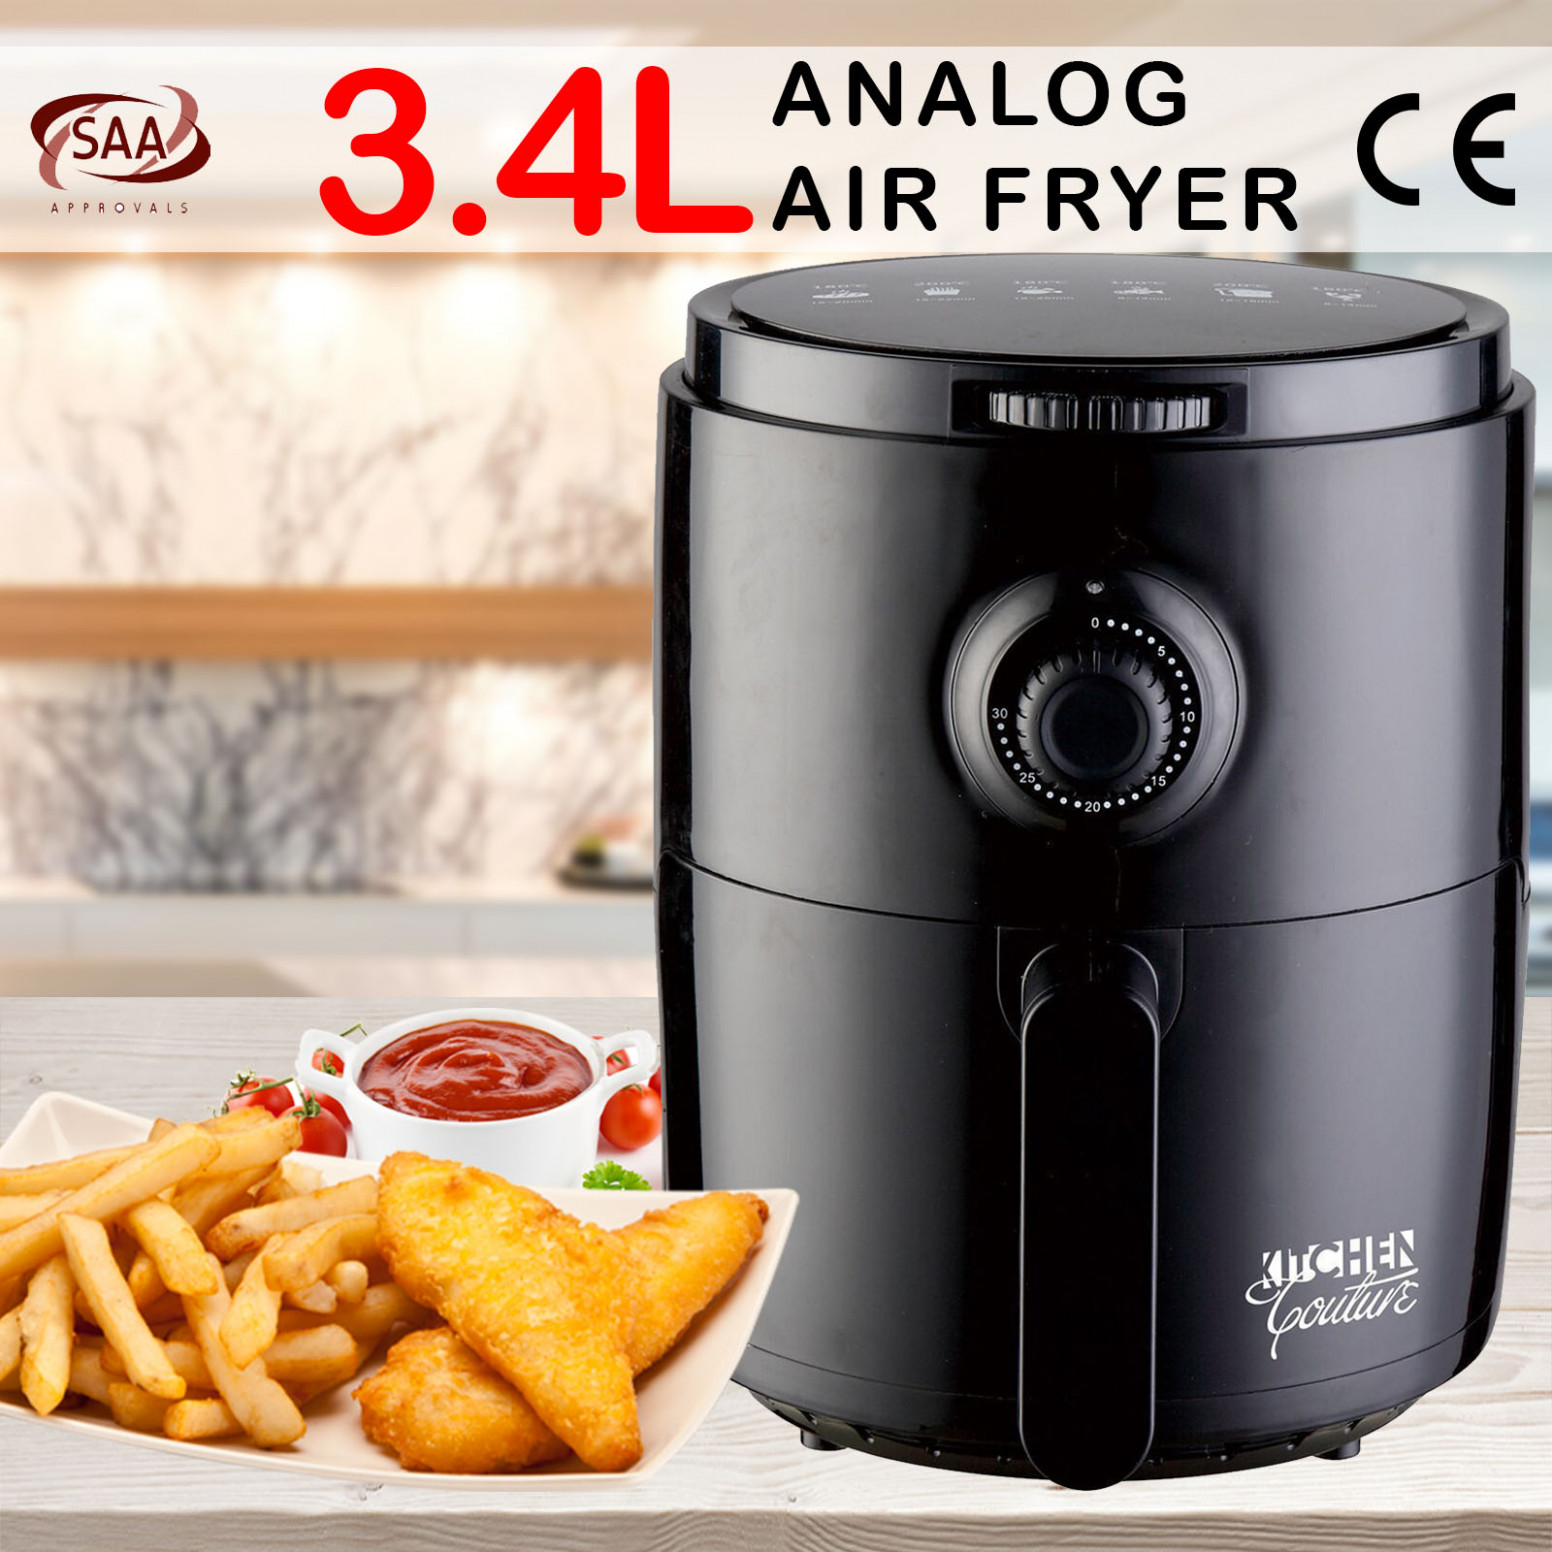 Details About Kitchen Couture Air Fryer Healthy Food No Oil Cooking Recipe  114